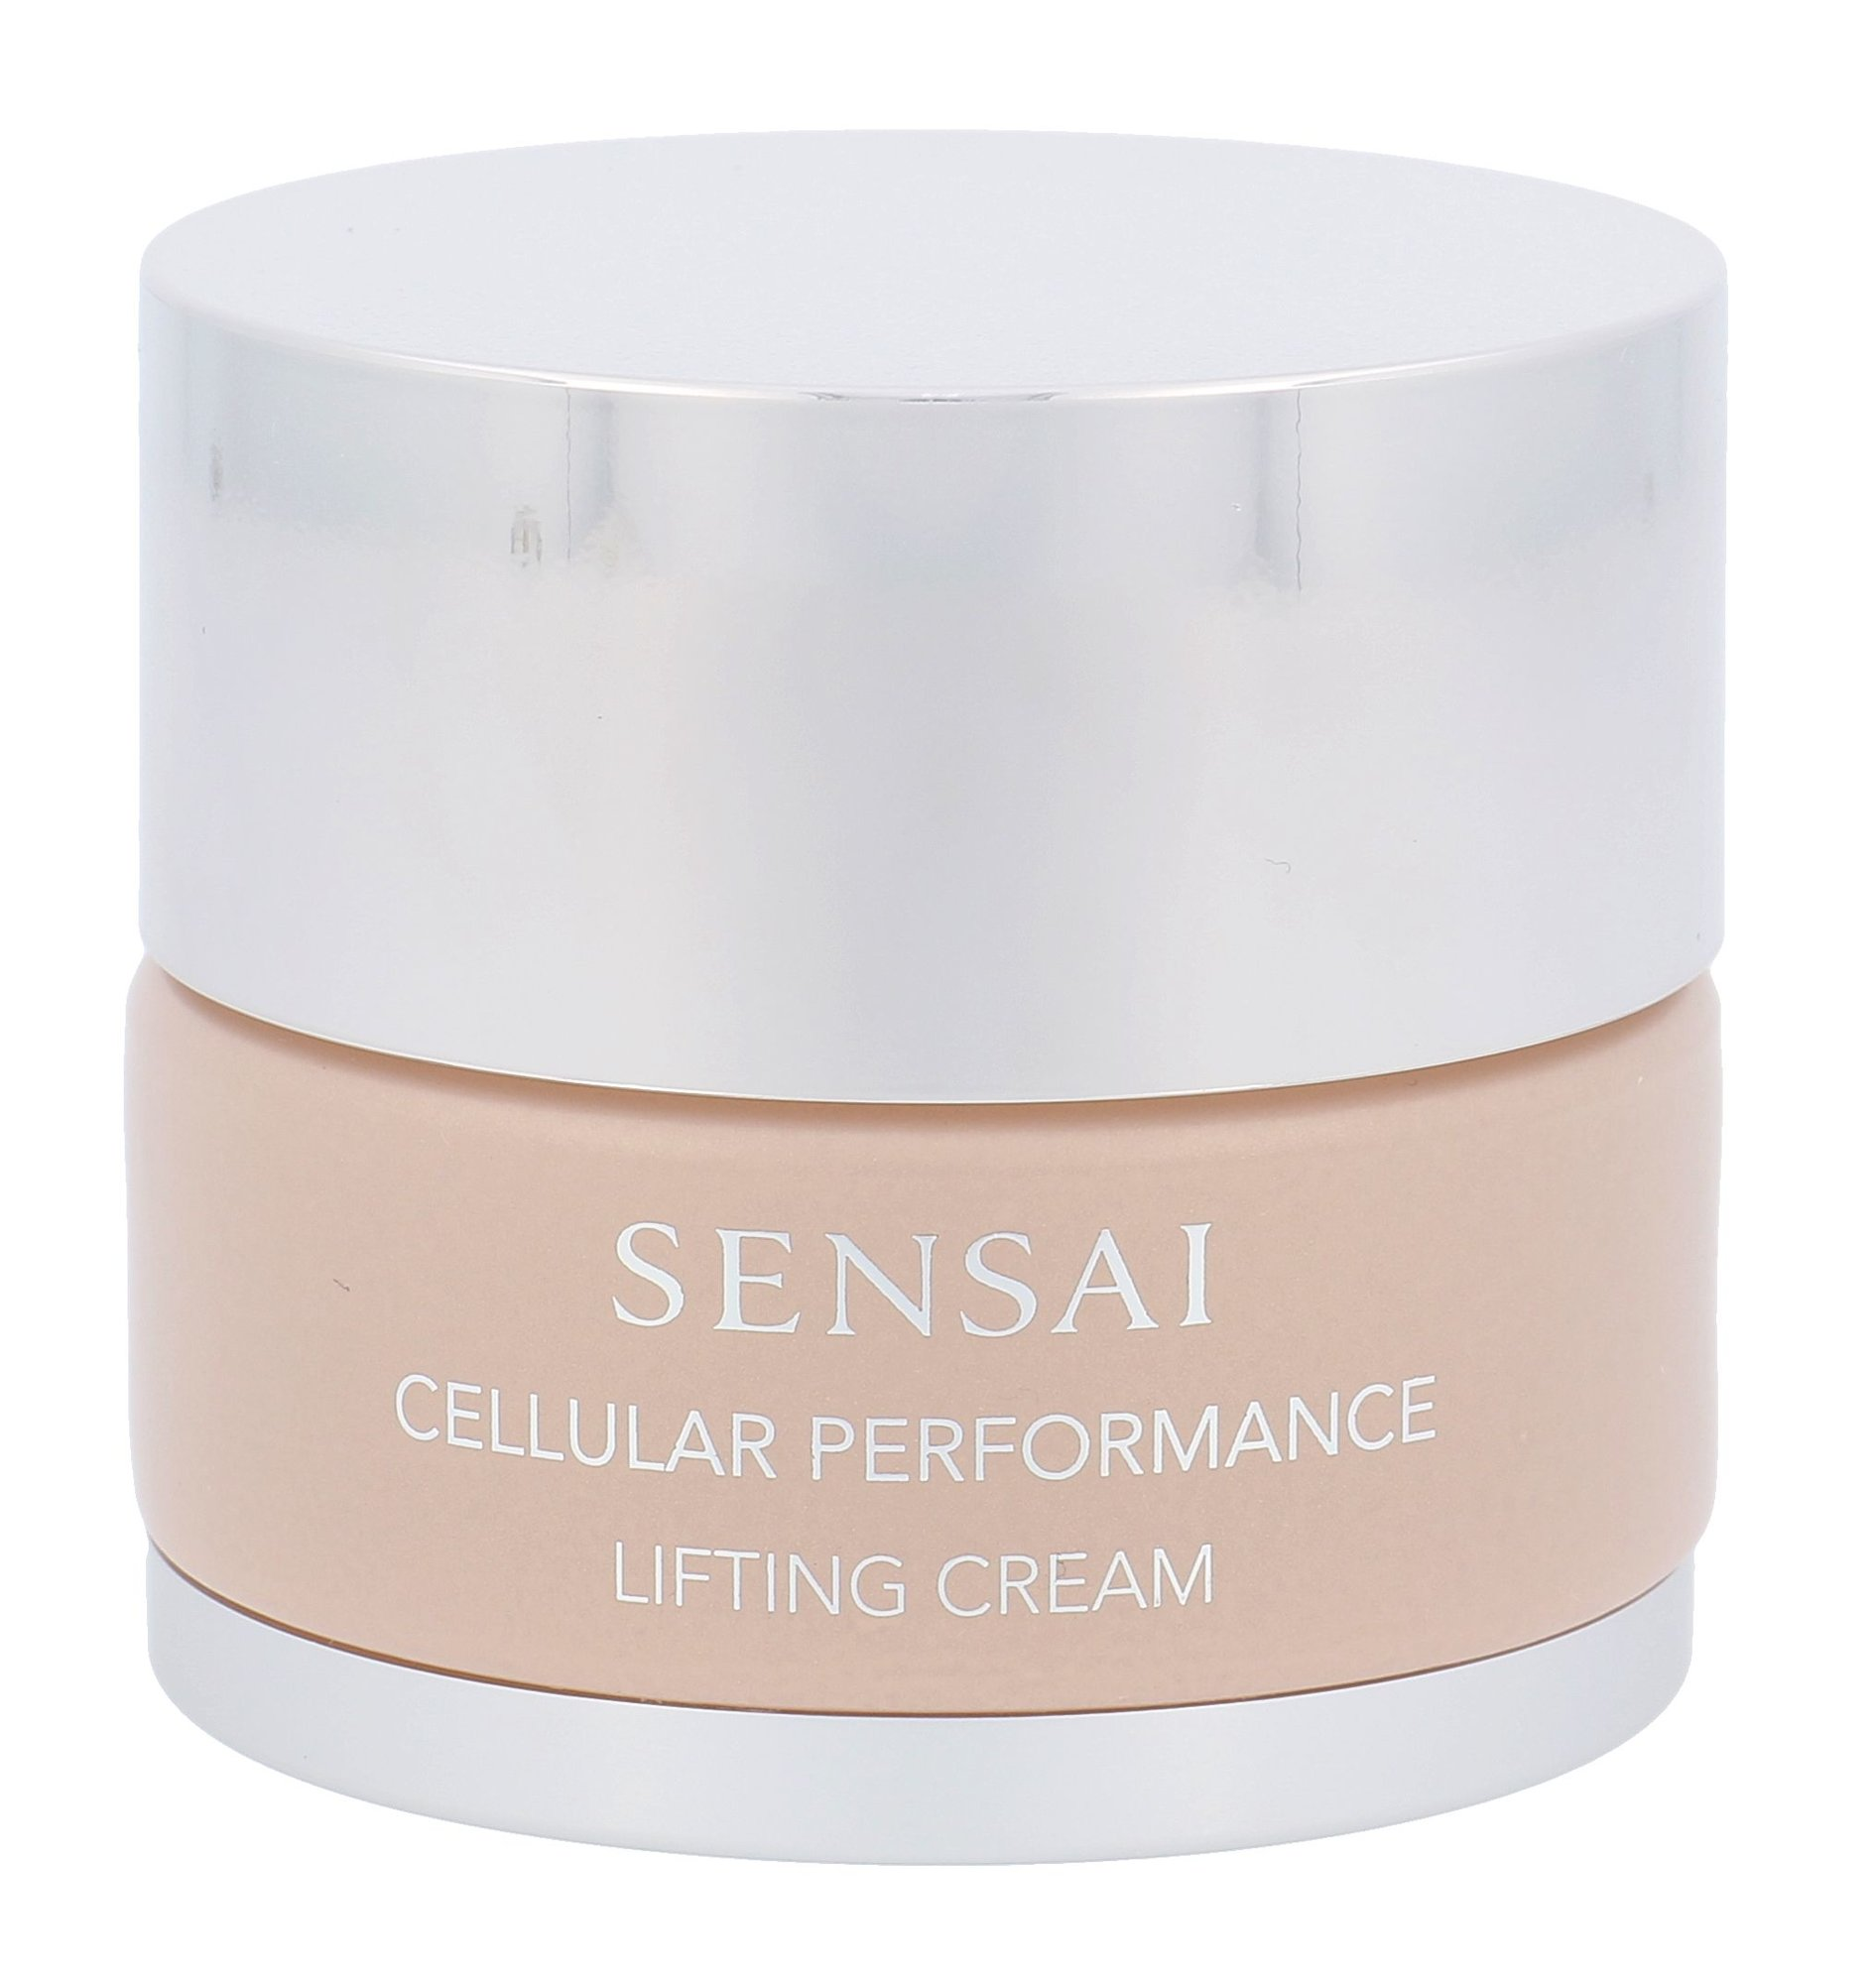 Kanebo Sensai Cellular Perfomance Lifting Cream Cosmetic 40ml